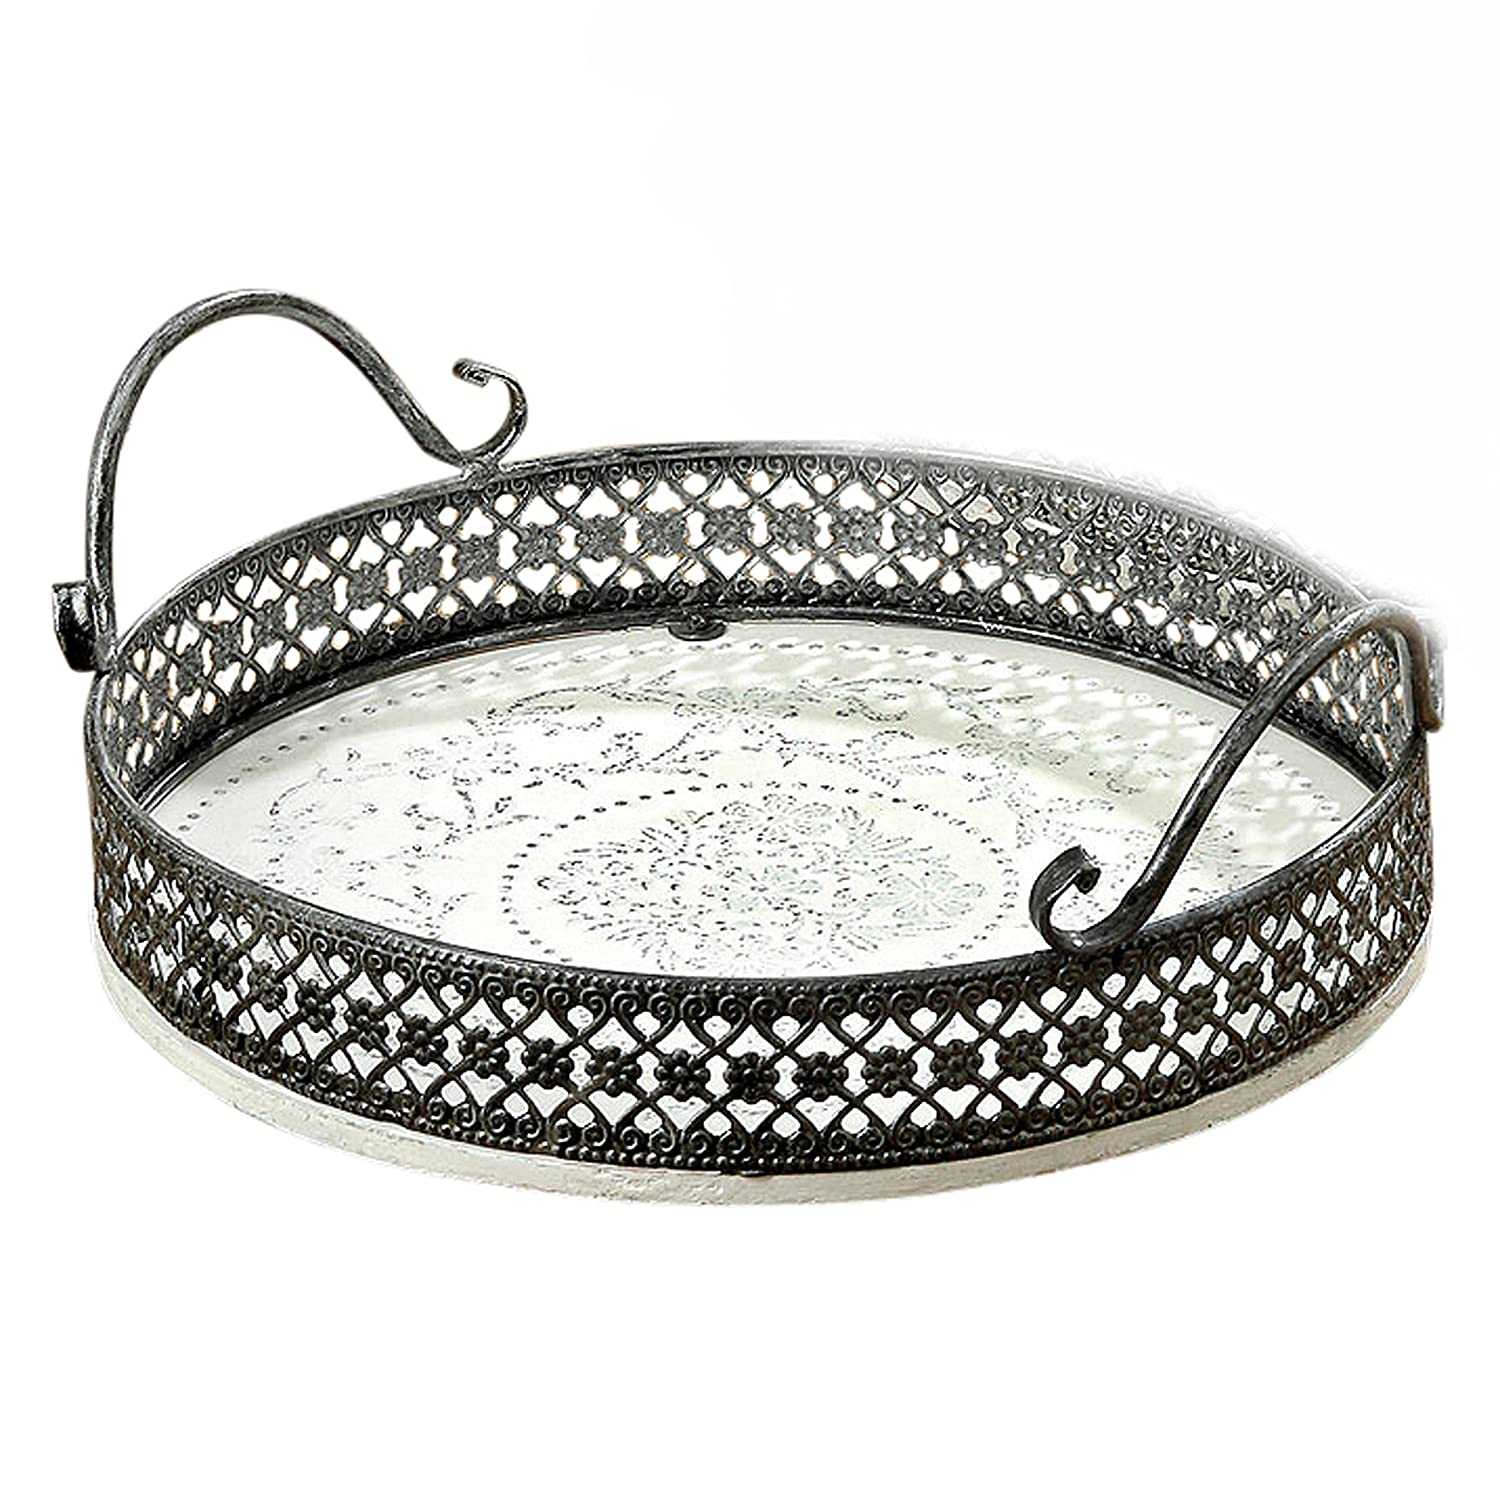 Whole House Worlds The Stockbridge Round Tray Stenciled Floral Roundels, Rustic White with Gray Accents, Detailed Vintage Style Metal Work Rims, 11 Inches Diameter, By WHW 3.28